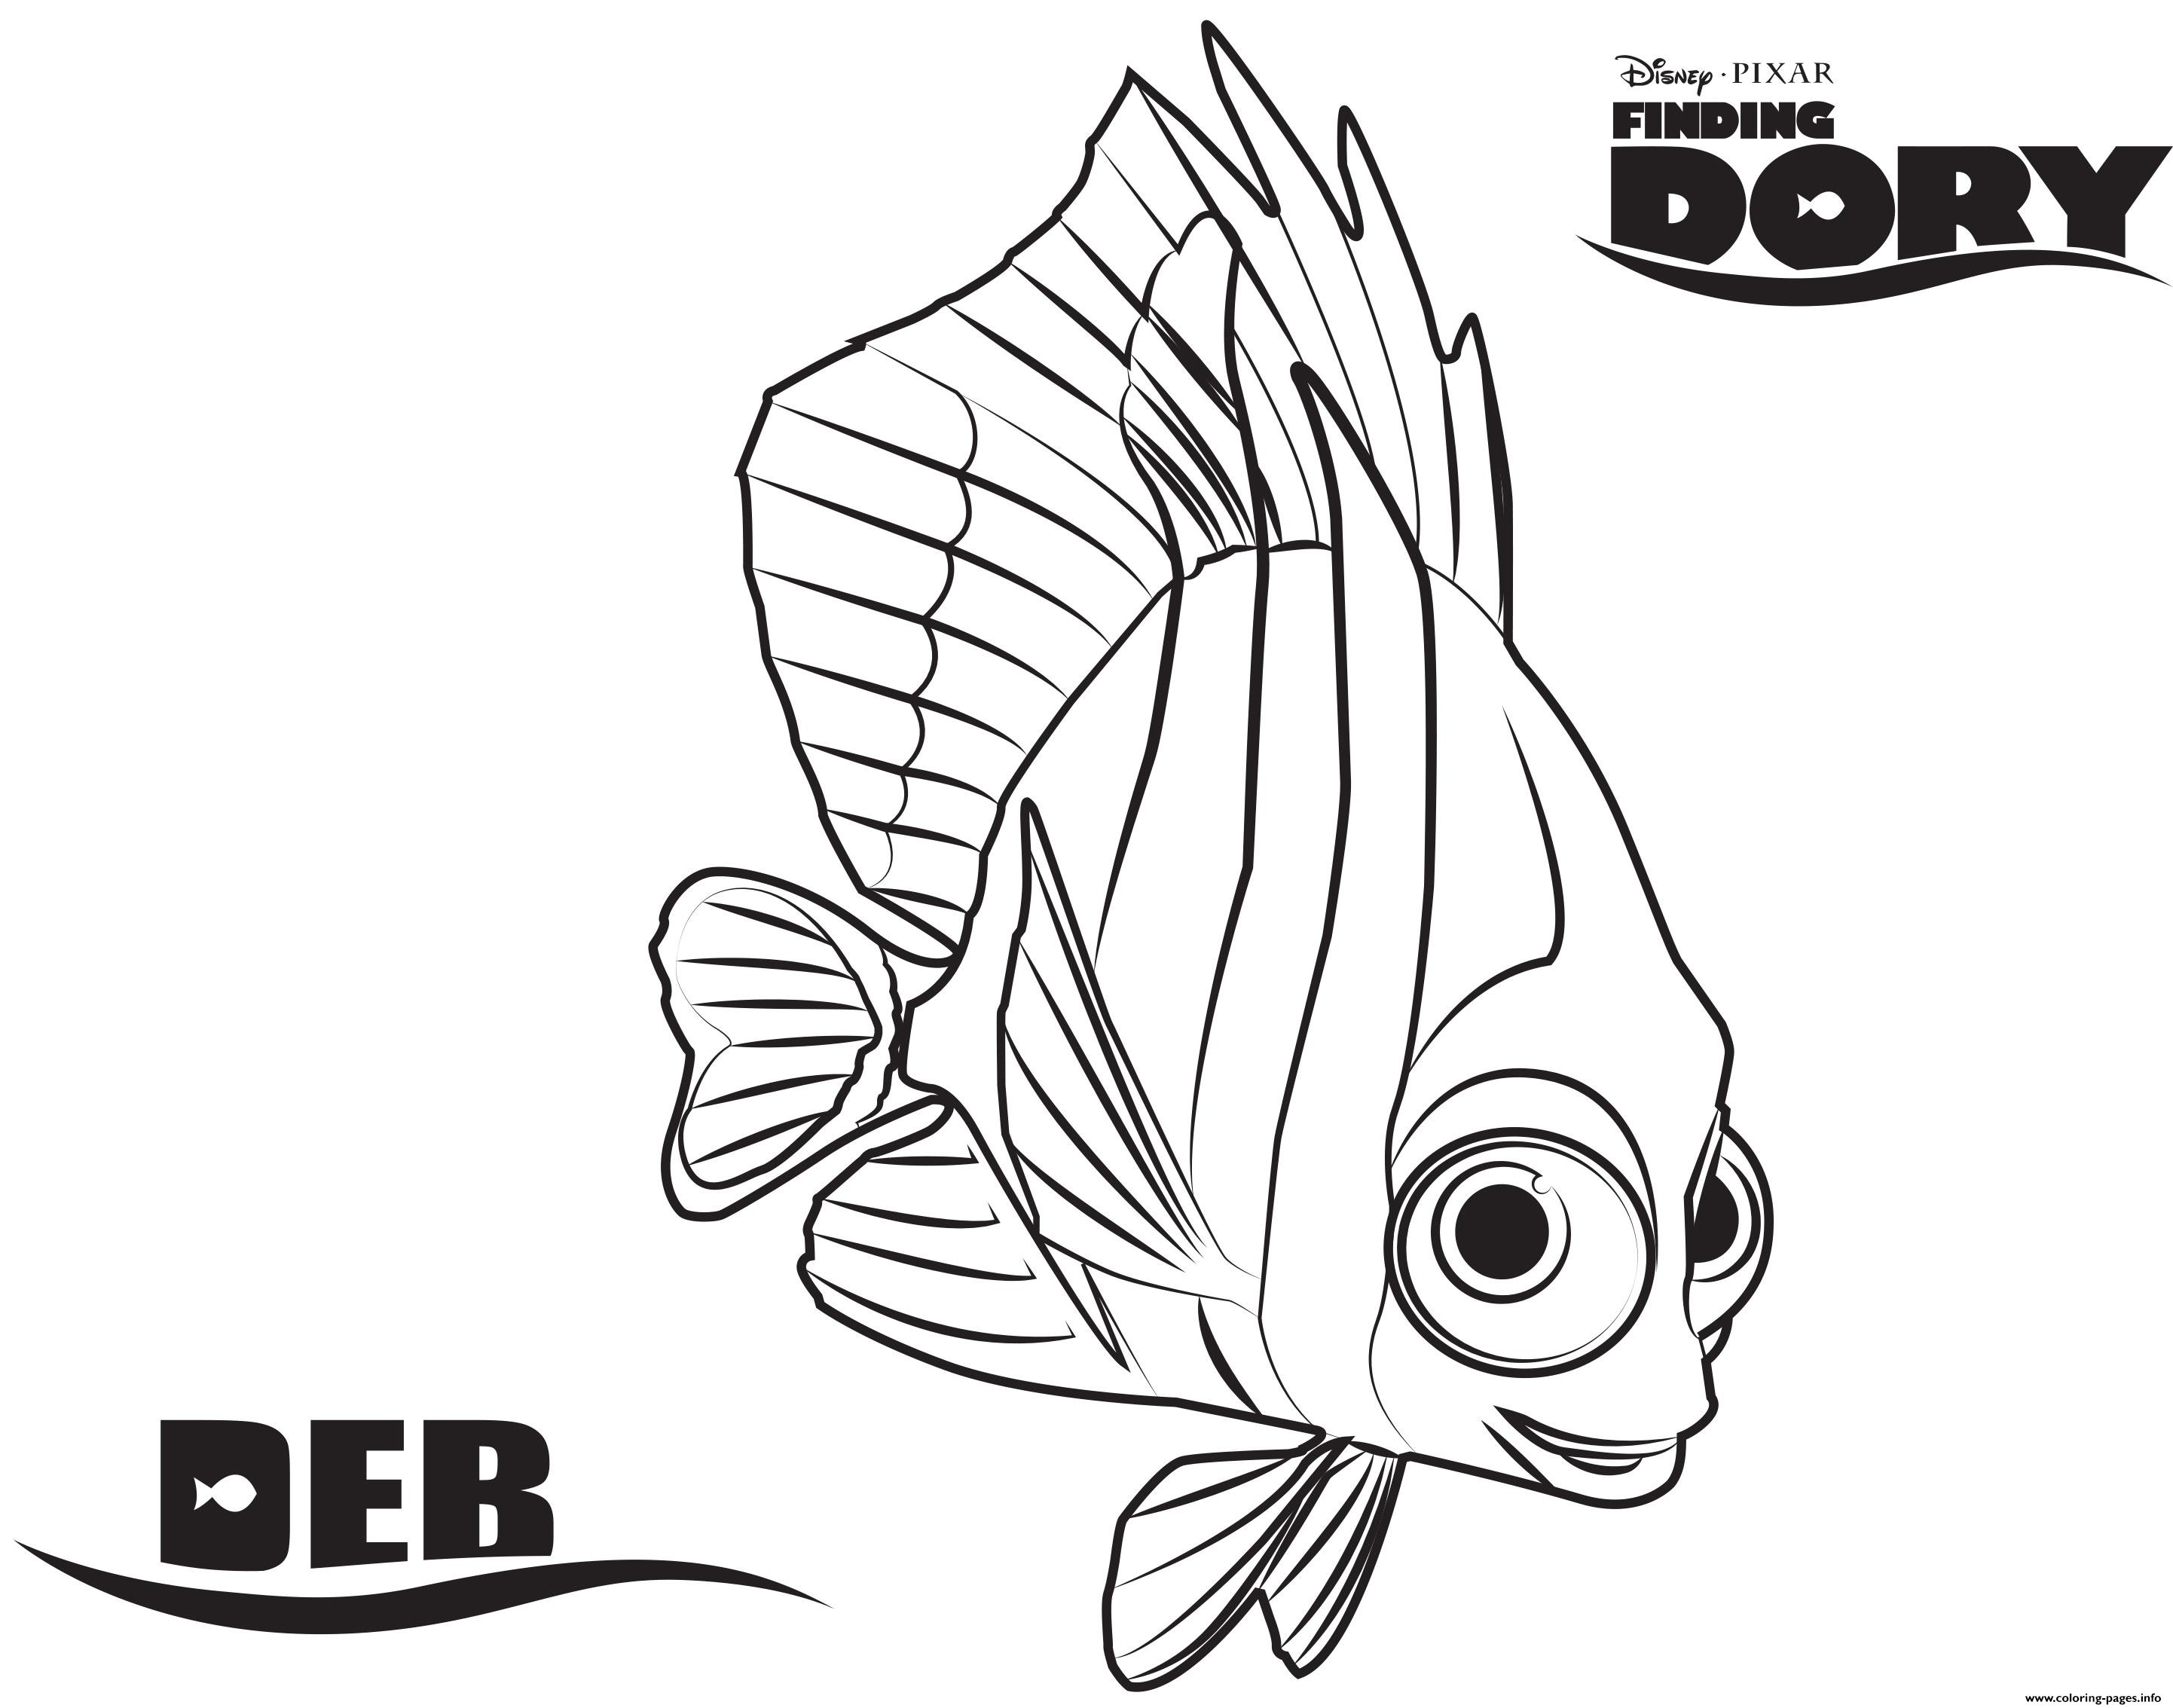 Nemo Y Dory Para Colorear: Deb Finding Dory Disney Coloring Pages Printable